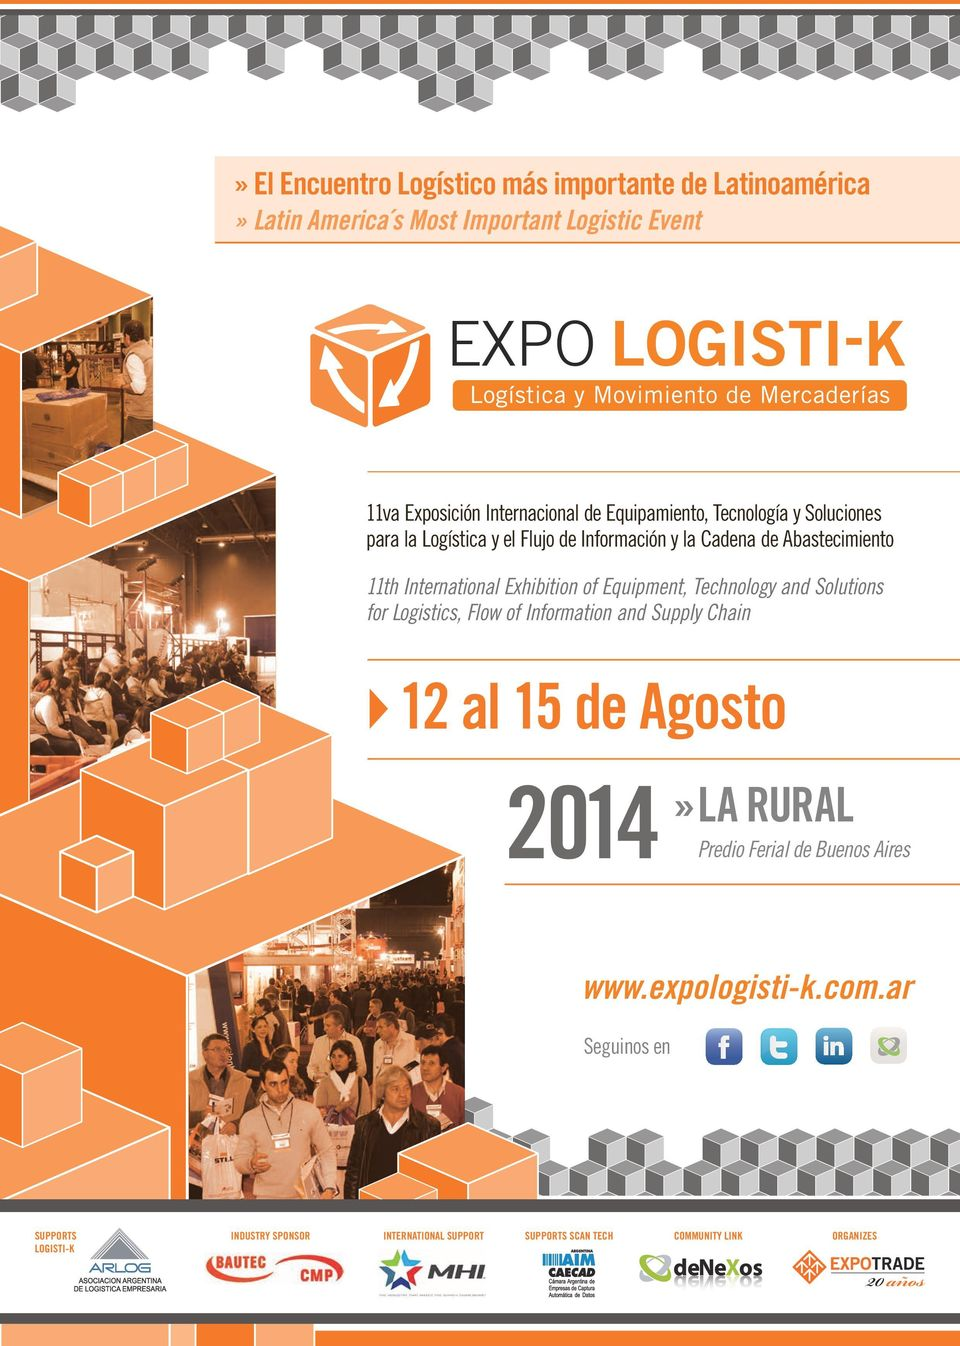 Equipment, Technology and Solutions for Logistics, Flow of Information and Supply Chain 12 al 15 de Agosto 2014»LA RURAL Predio Ferial de Buenos